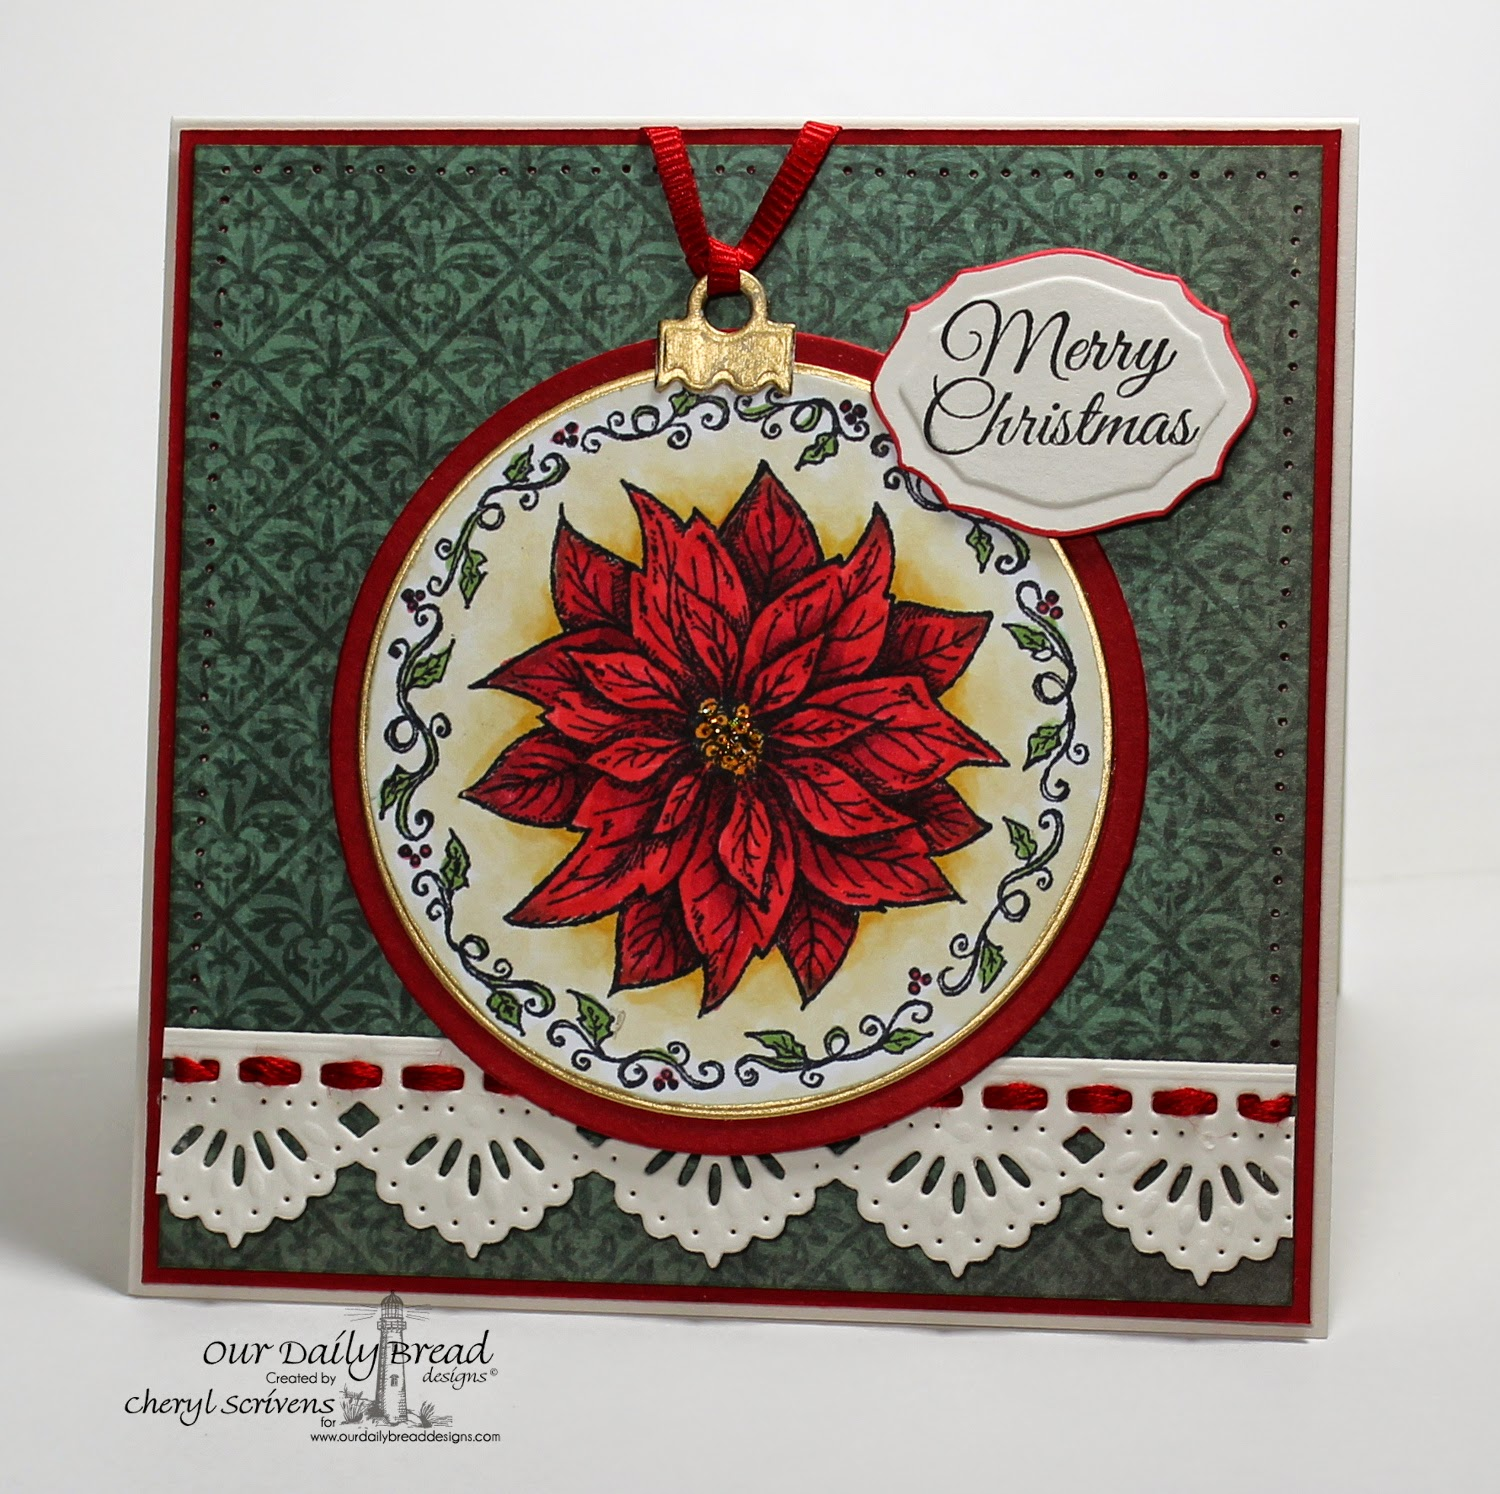 Our Daily Bread Designs, ODBDSLC215, Poinsettia Ornament, Poinsettia Wreath, Beautiful Borders Dies, Circle Ornaments Dies, Matting Circles Dies, Elegant Oval Dies, Christmas Paper Collection 2013, CherylQuilts, Designed by Cheryl Scrivens